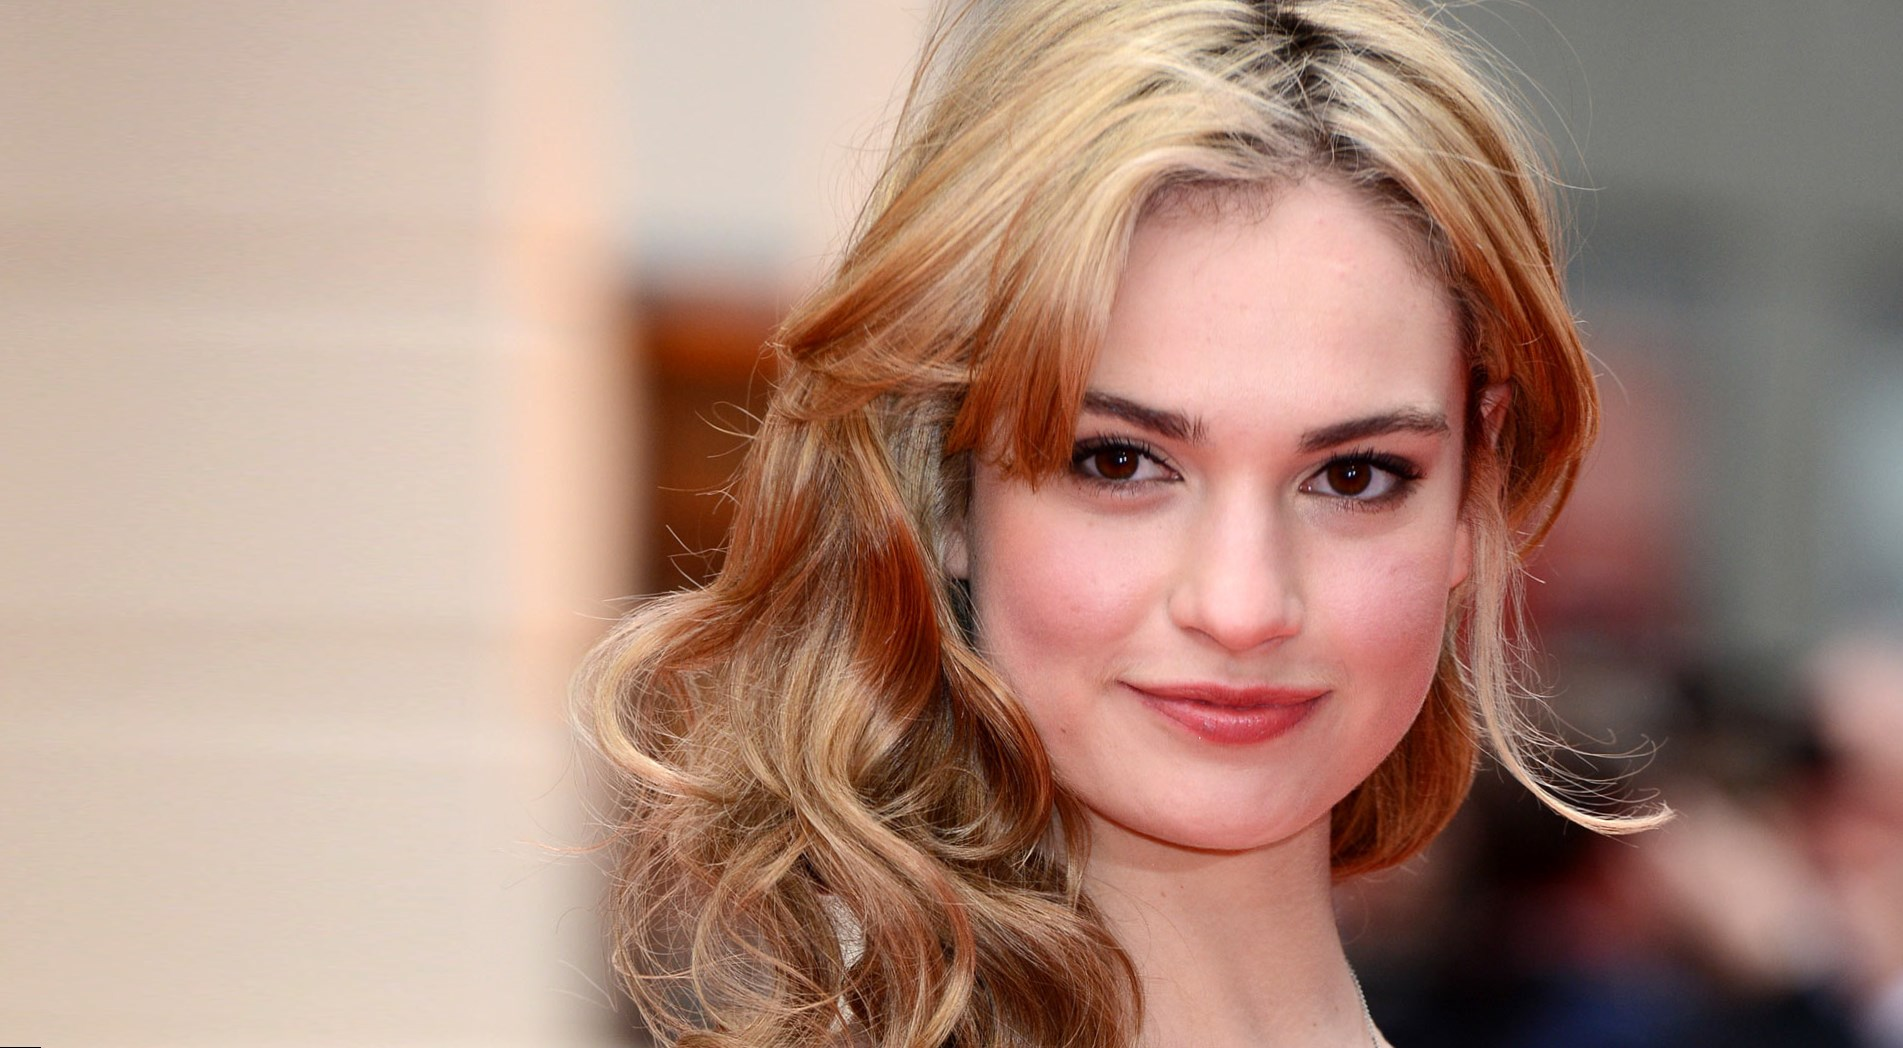 Lily James Image: Lily James Weight, Height And Age. We Know It All